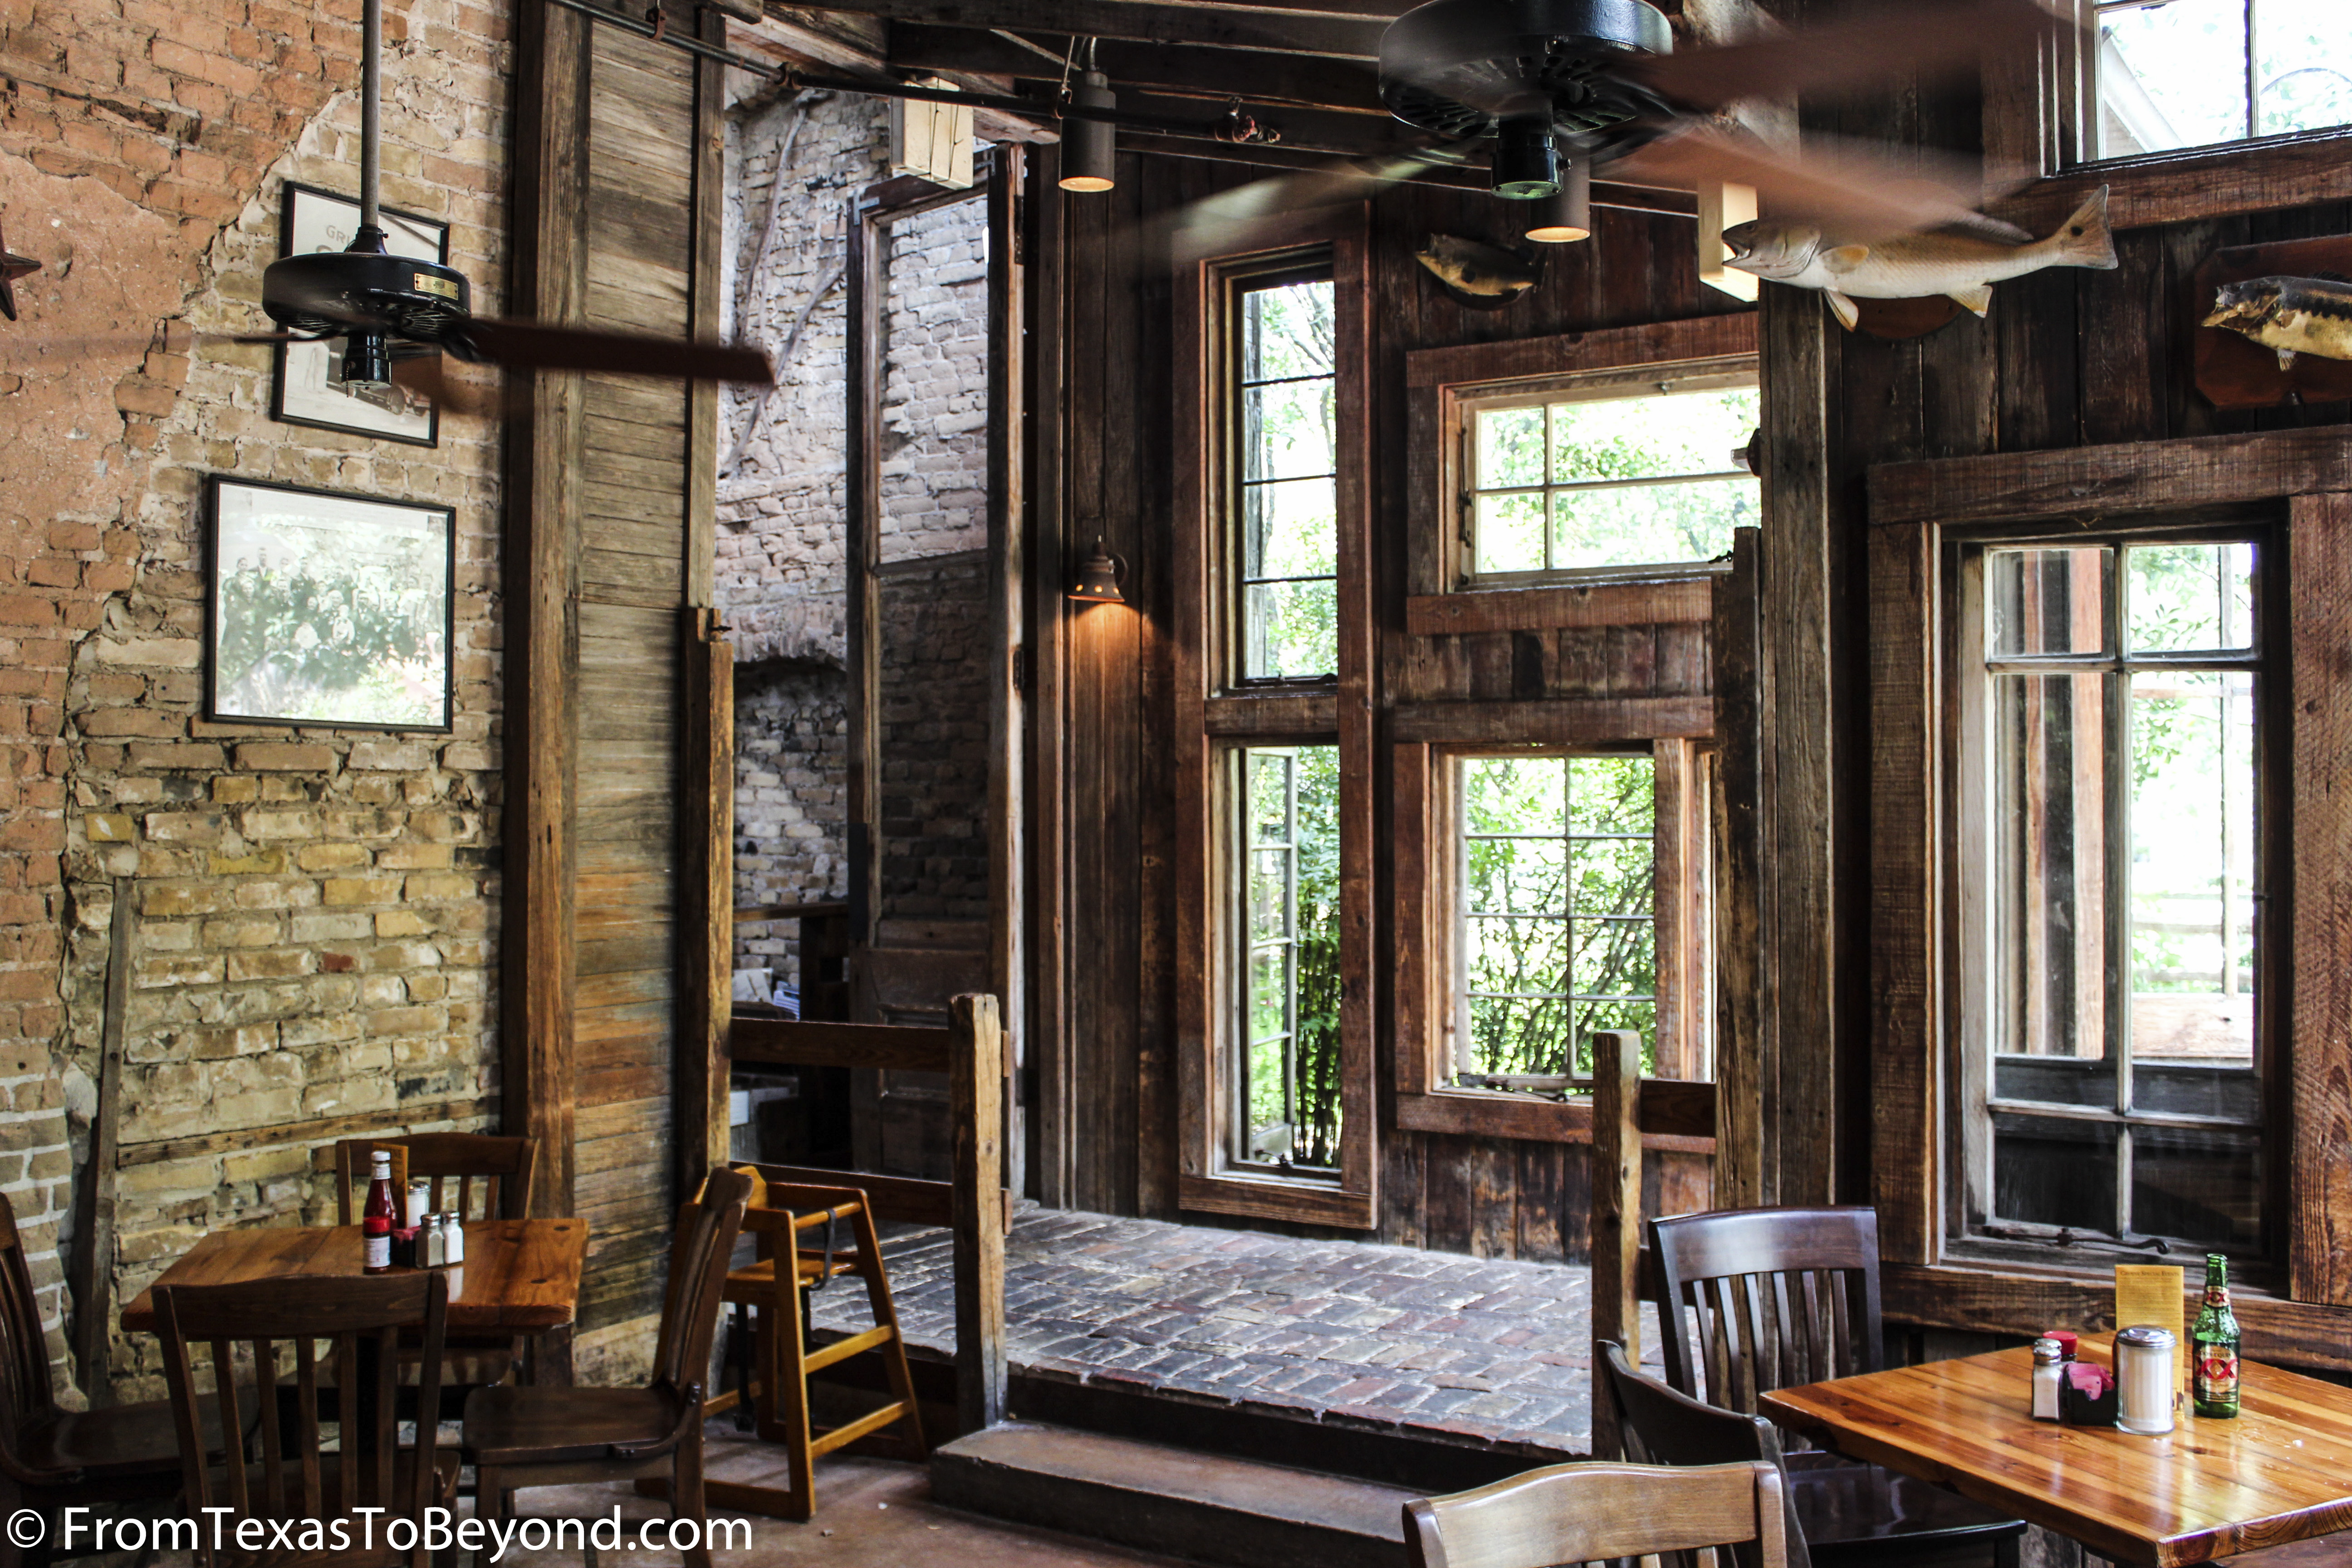 Gristmill River Restaurant And Bar From Texas To Beyond